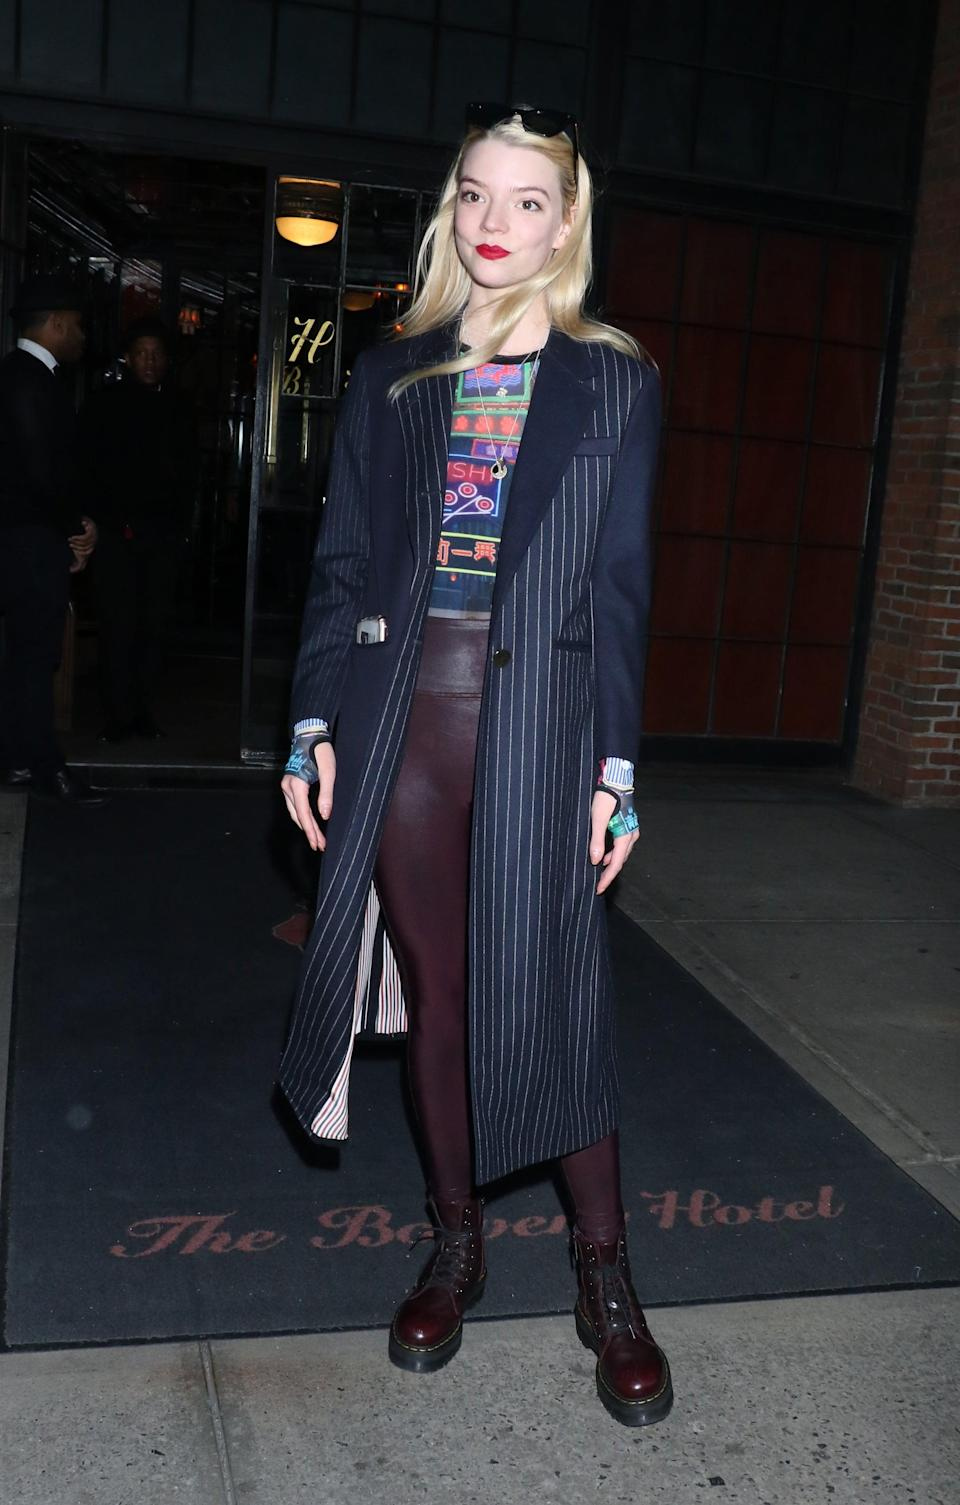 <p>Anya turned up the edge for a night out in New York City, styling maroon leggings with her trusty Dr. Martens and completing the outfit with an electrifying long-sleeved graphic tee.</p>